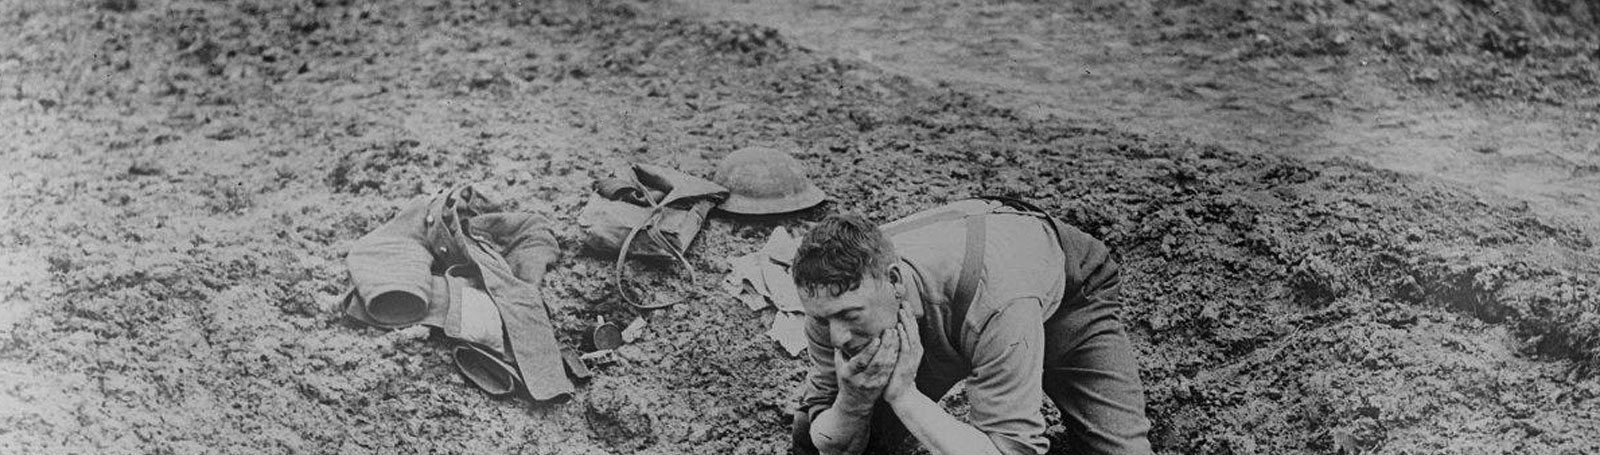 Photograph of man kneeling in mud